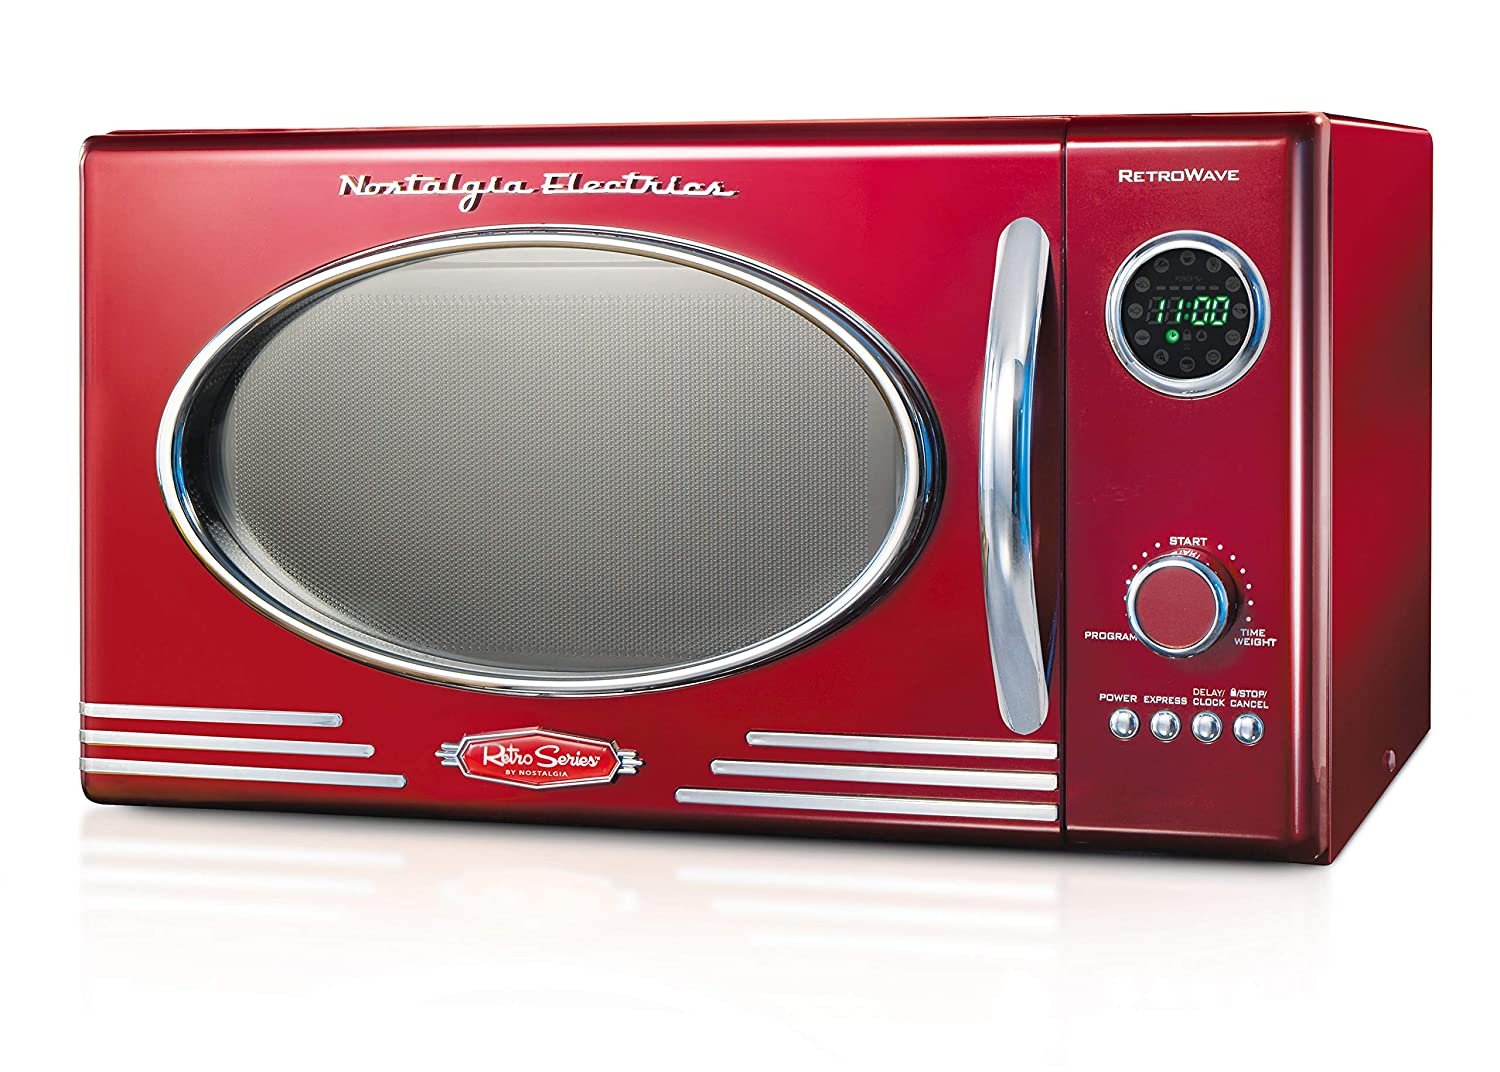 Nostalgia RMO4RR Retro Large 0.9 cu ft, 800-Watt Countertop Microwave Oven, 12 Pre-Programmed Cooking Settings, Digital Clock, Easy Clean Interior, Metallic Red